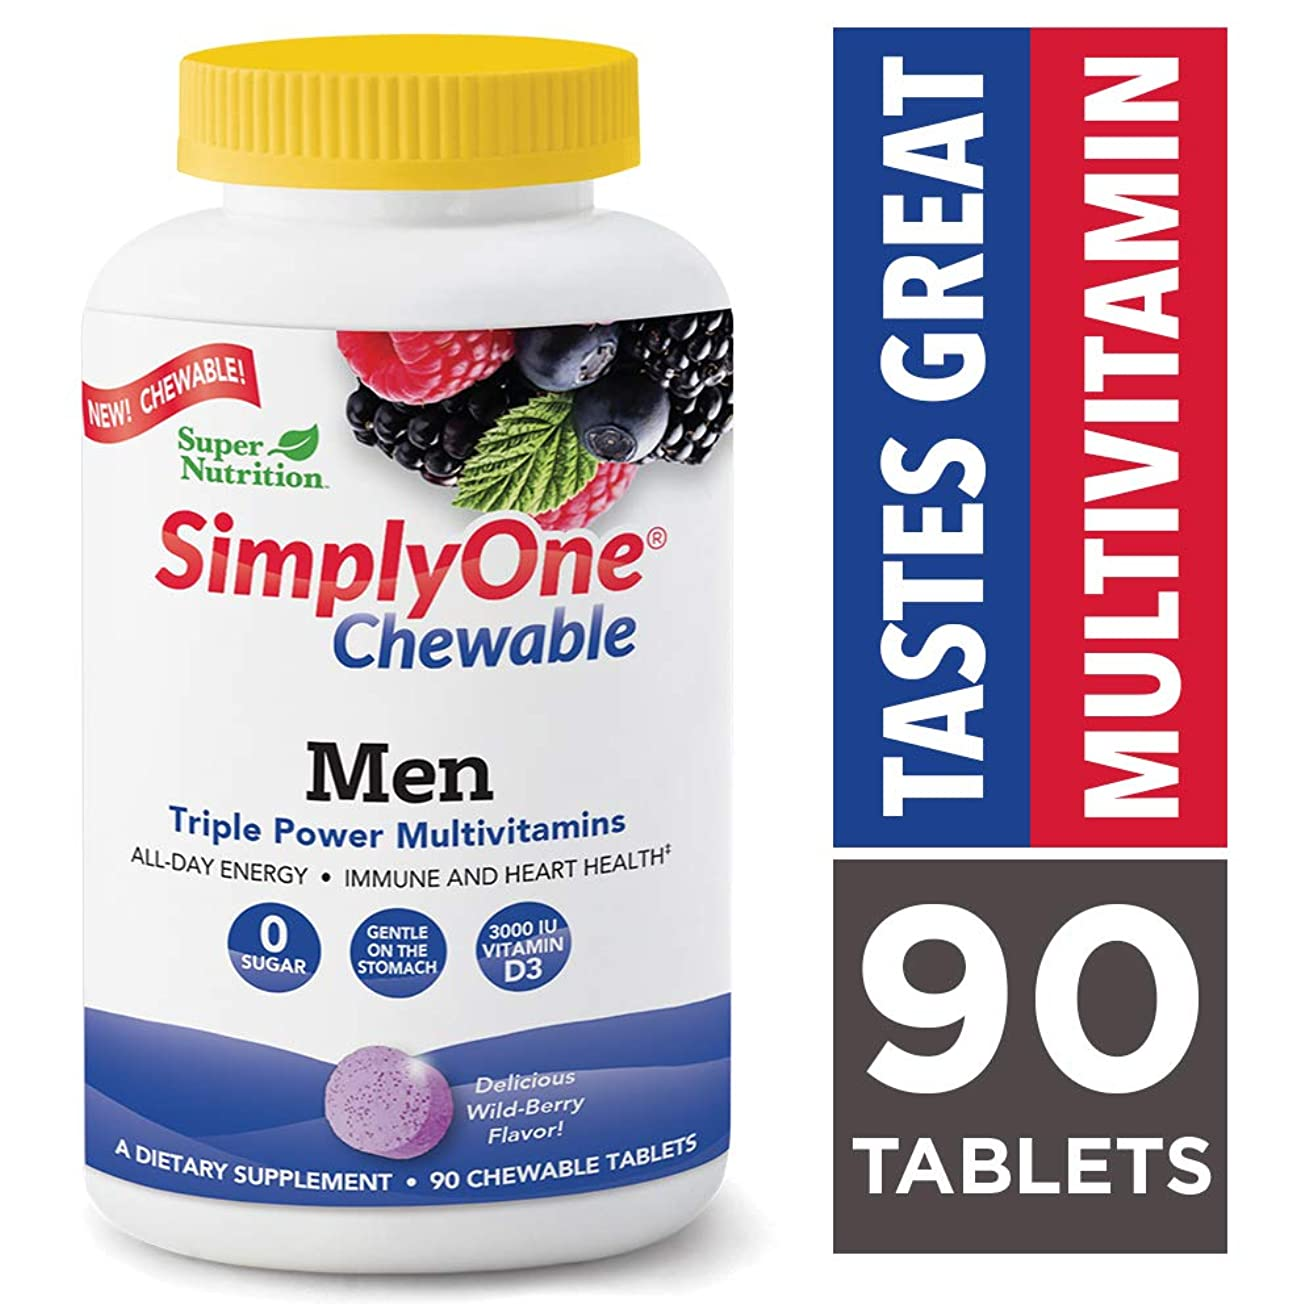 SimplyOne Chewable Multivitamin for Men, Daily All-in-One Vitamin by SuperNutrition, 90 Day Supply; Best Value Pack